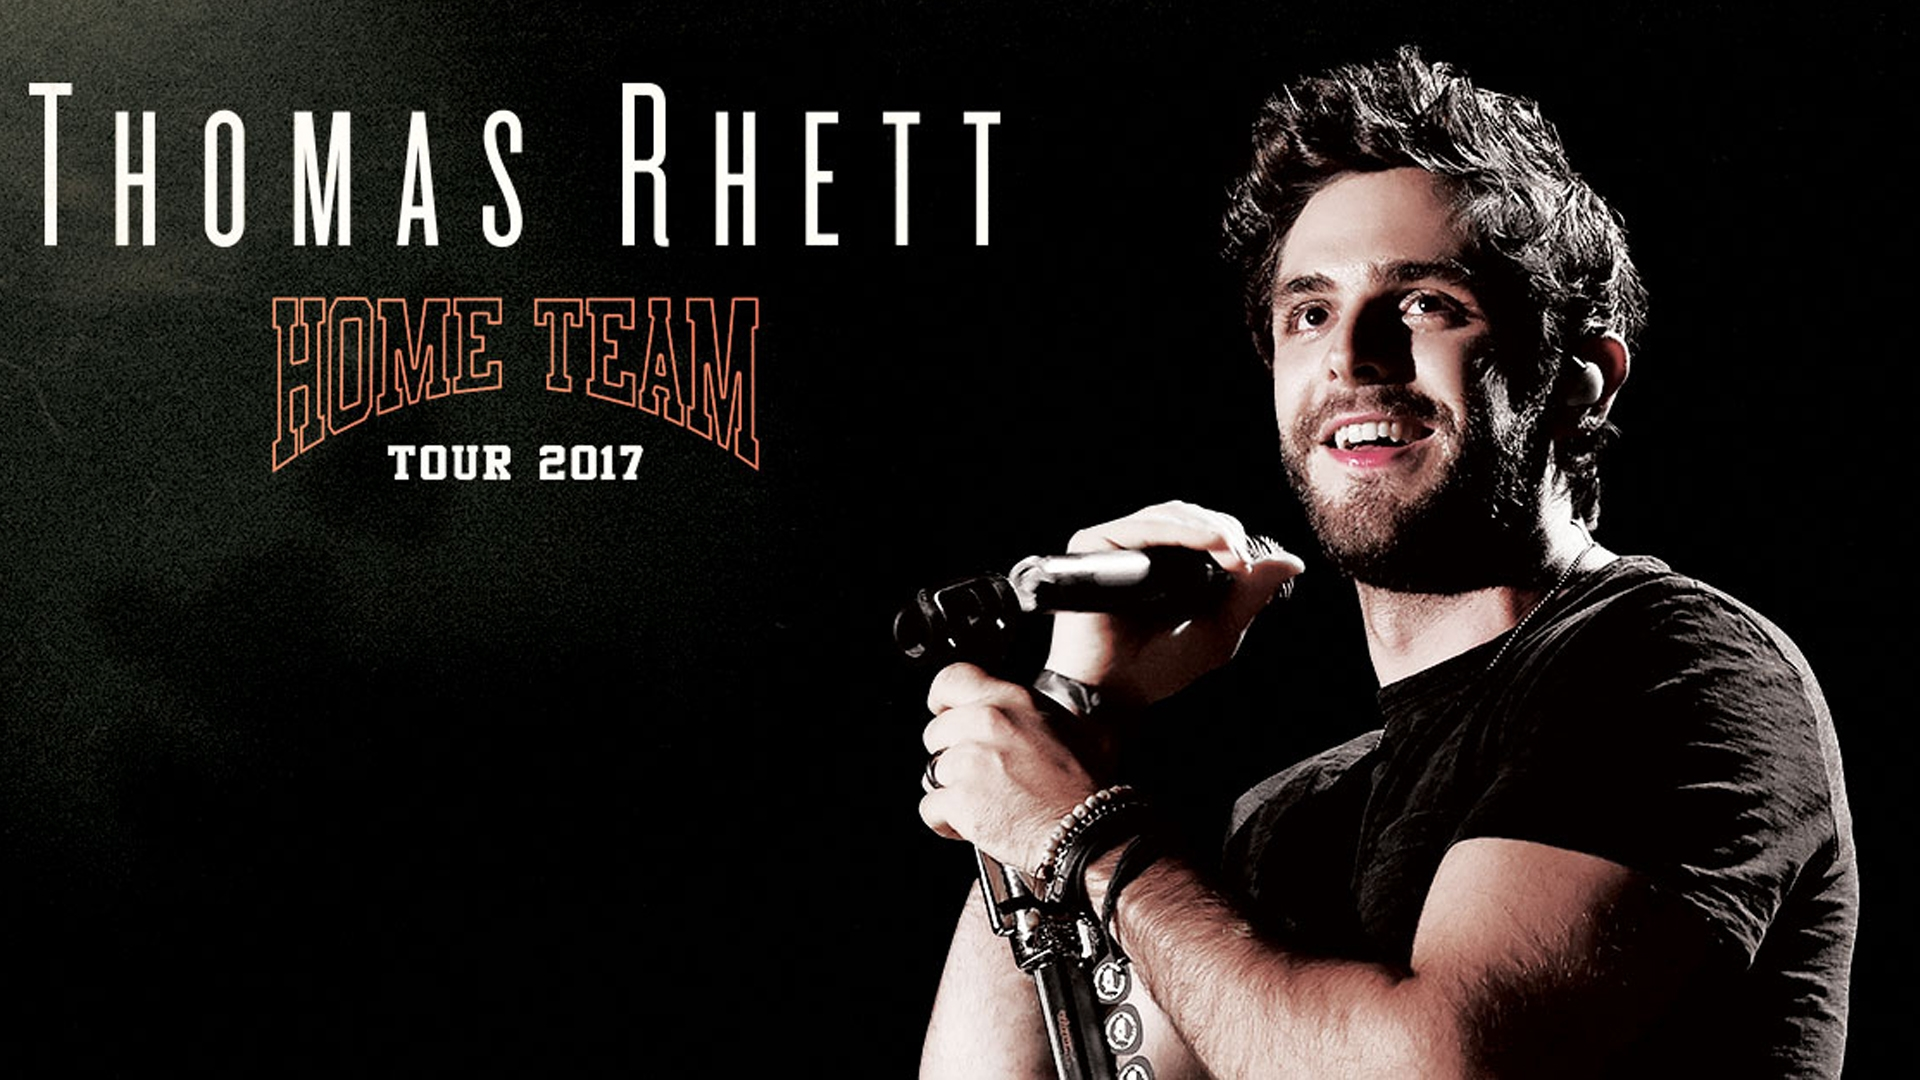 WATCH: Thomas Rhett & Home Team Tour Openers Cover Bruno Mars